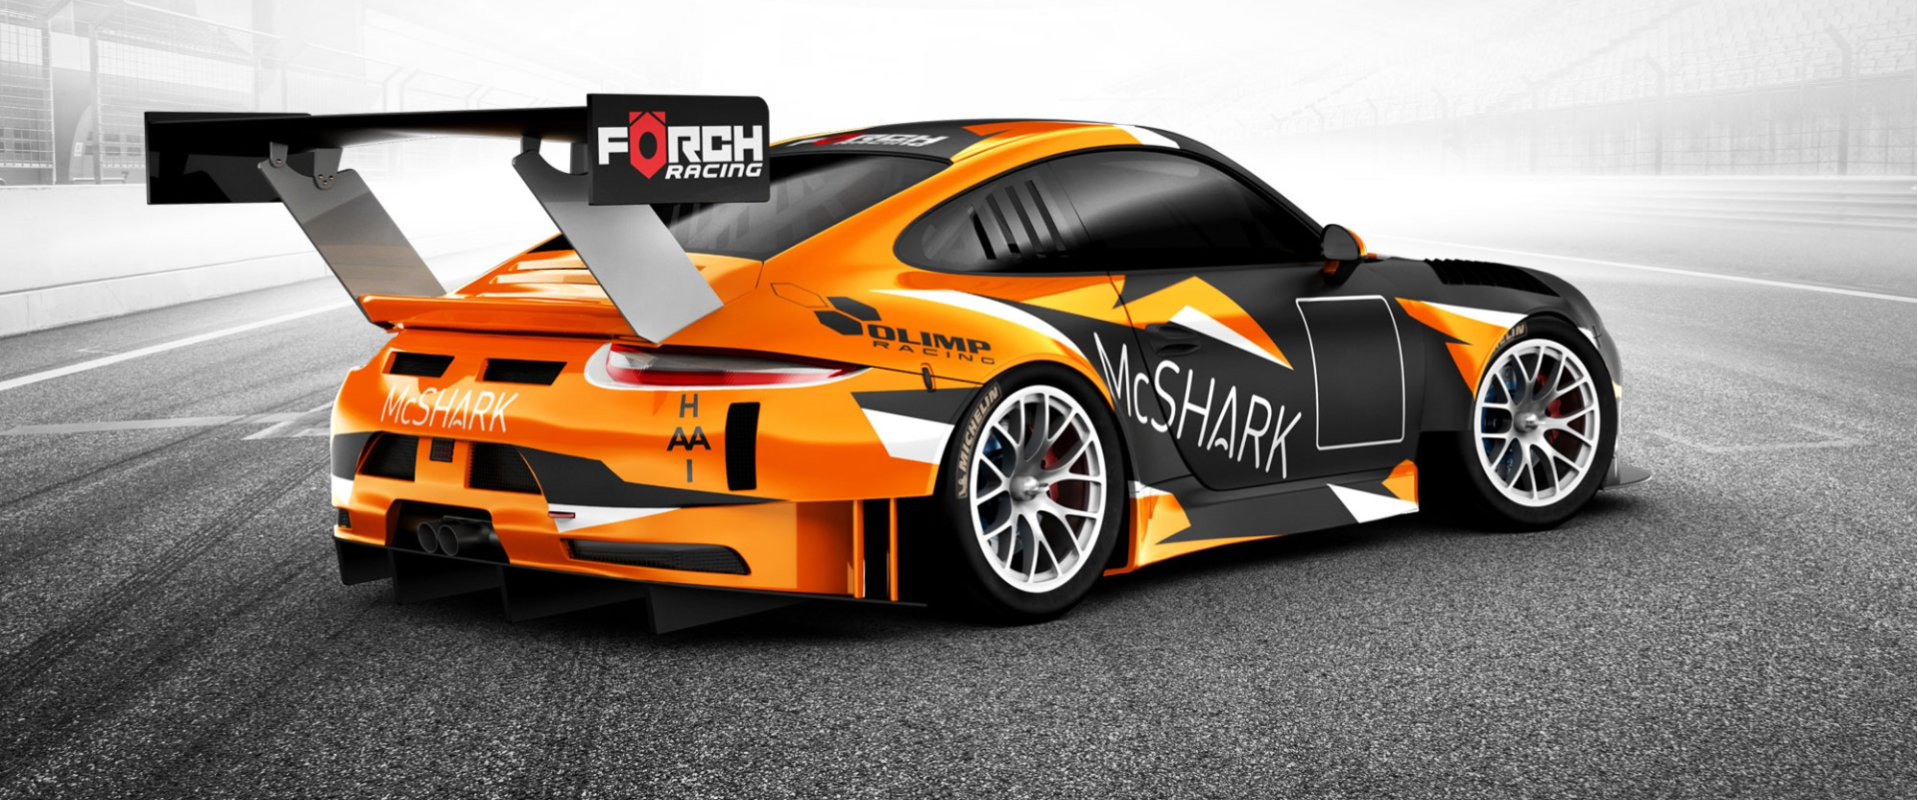 Forch Racing #3